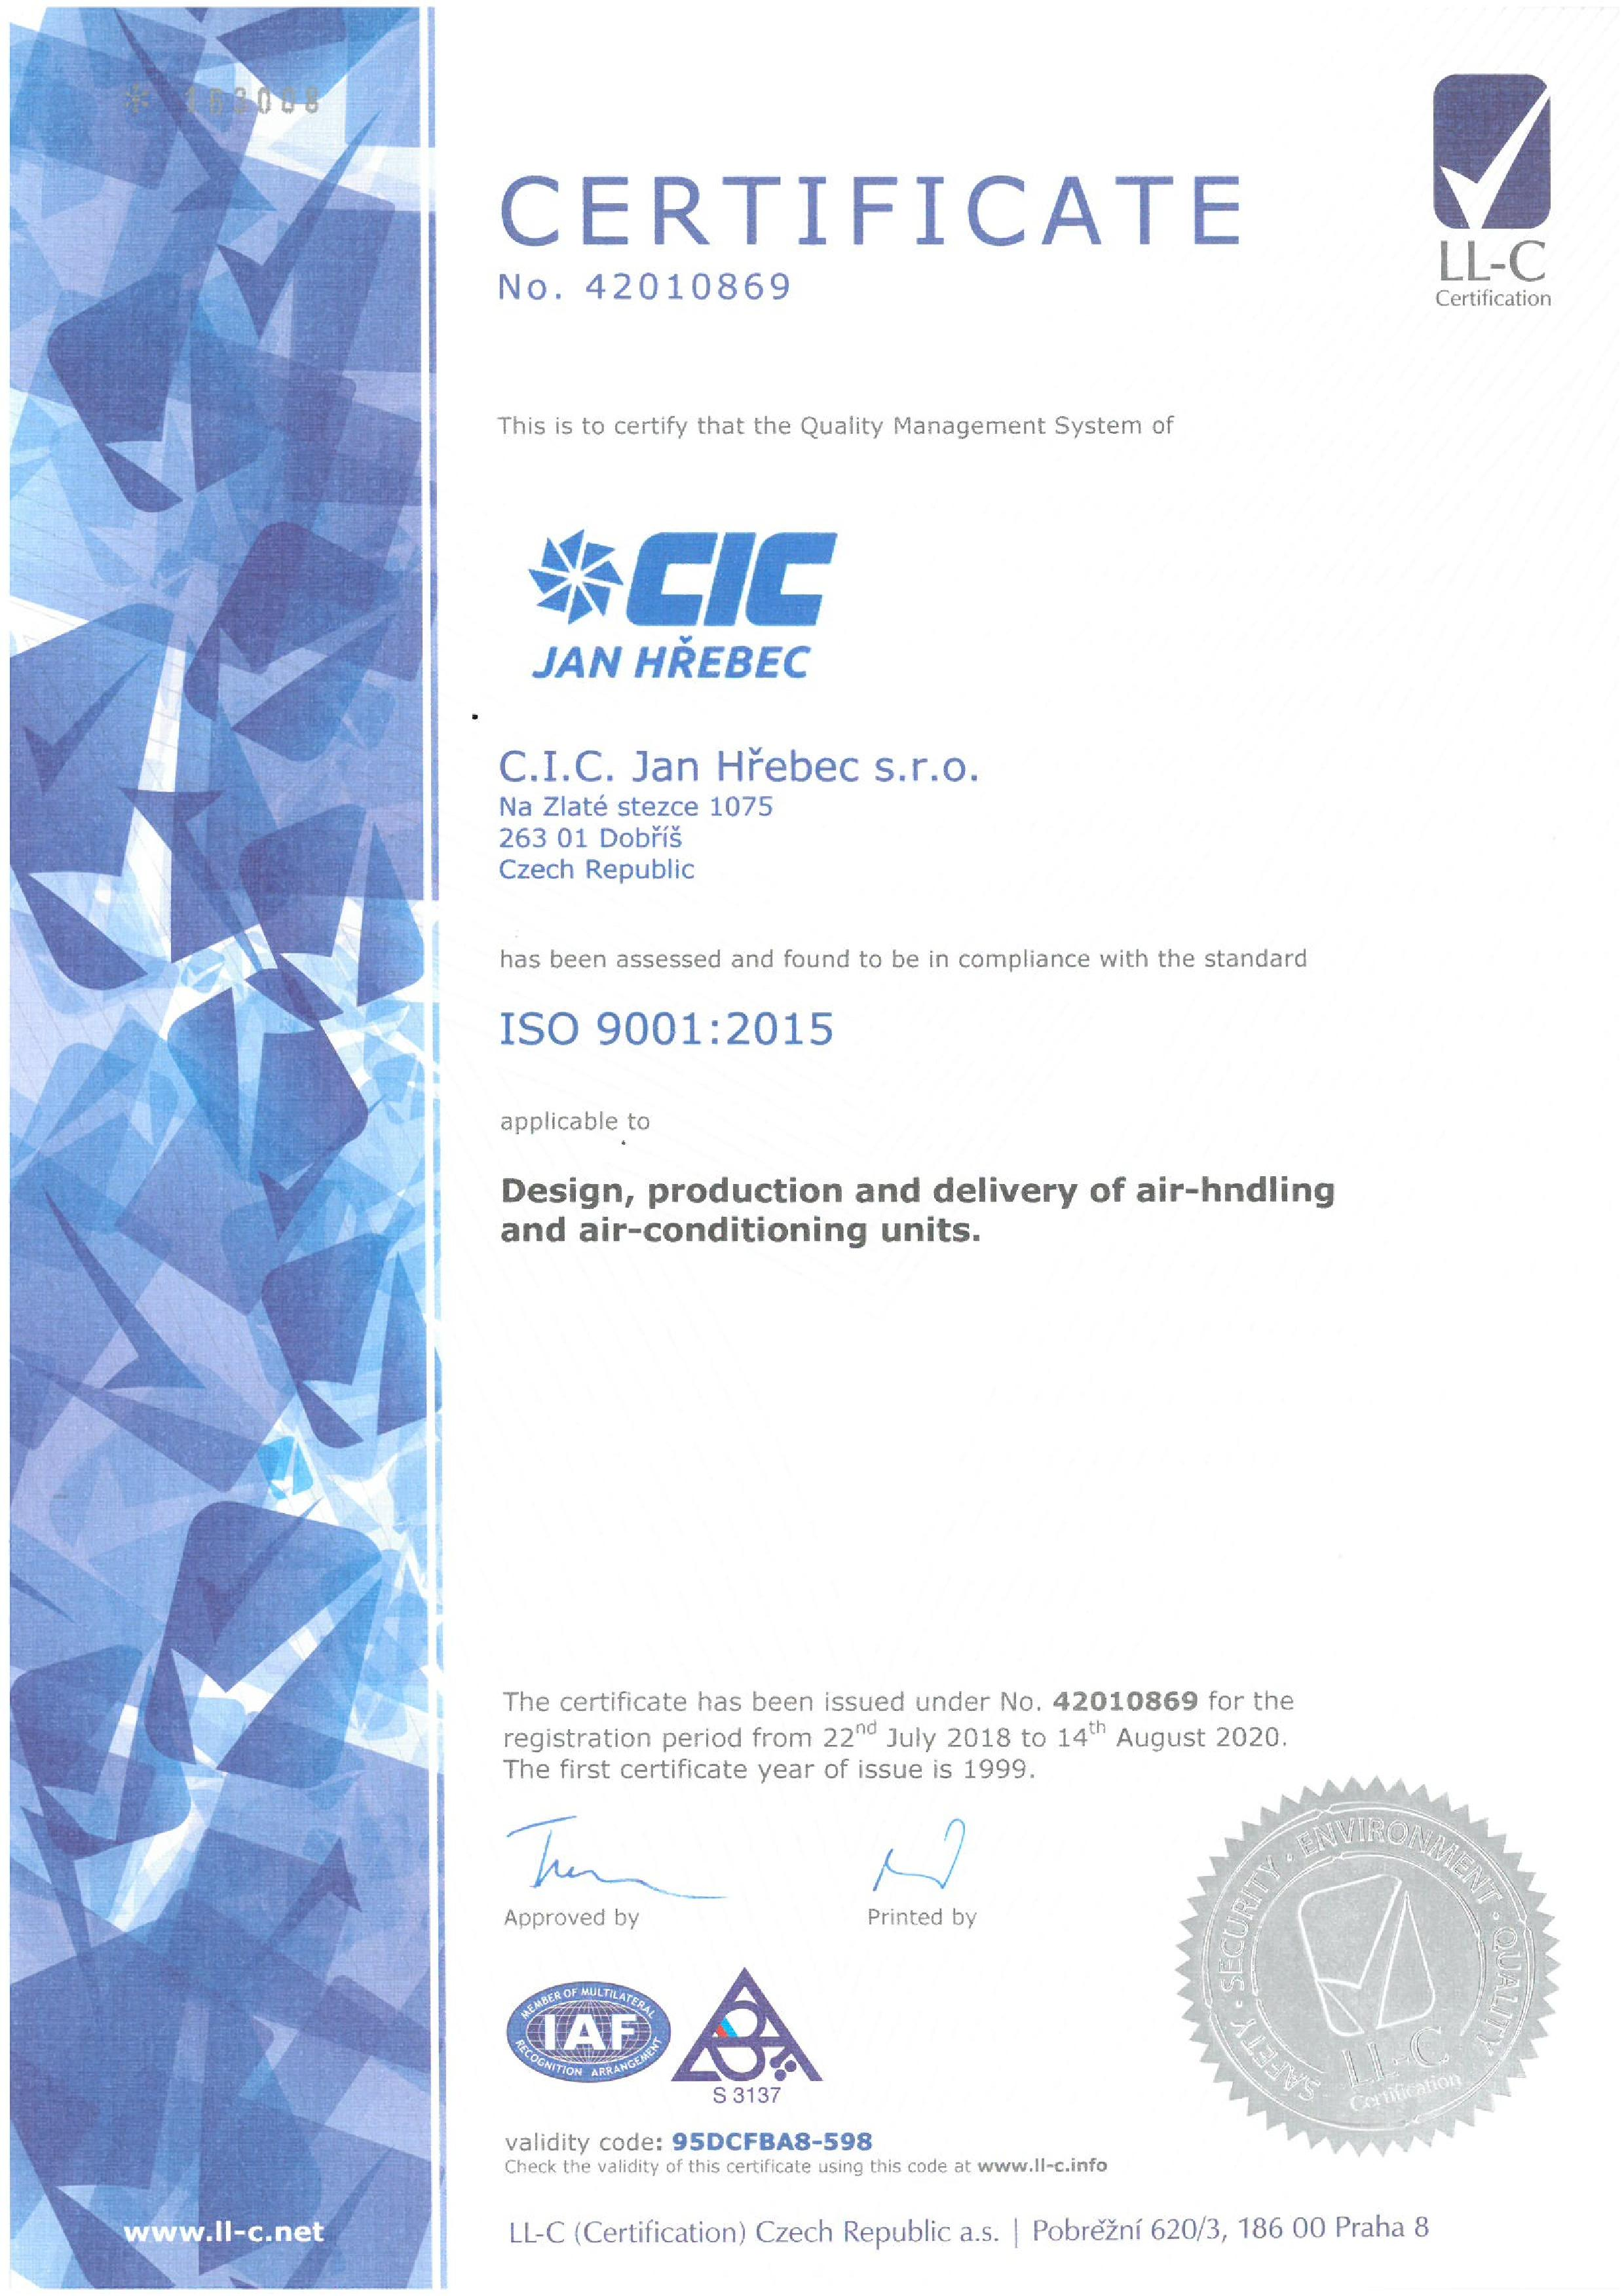 iso cic certificates company management certificate